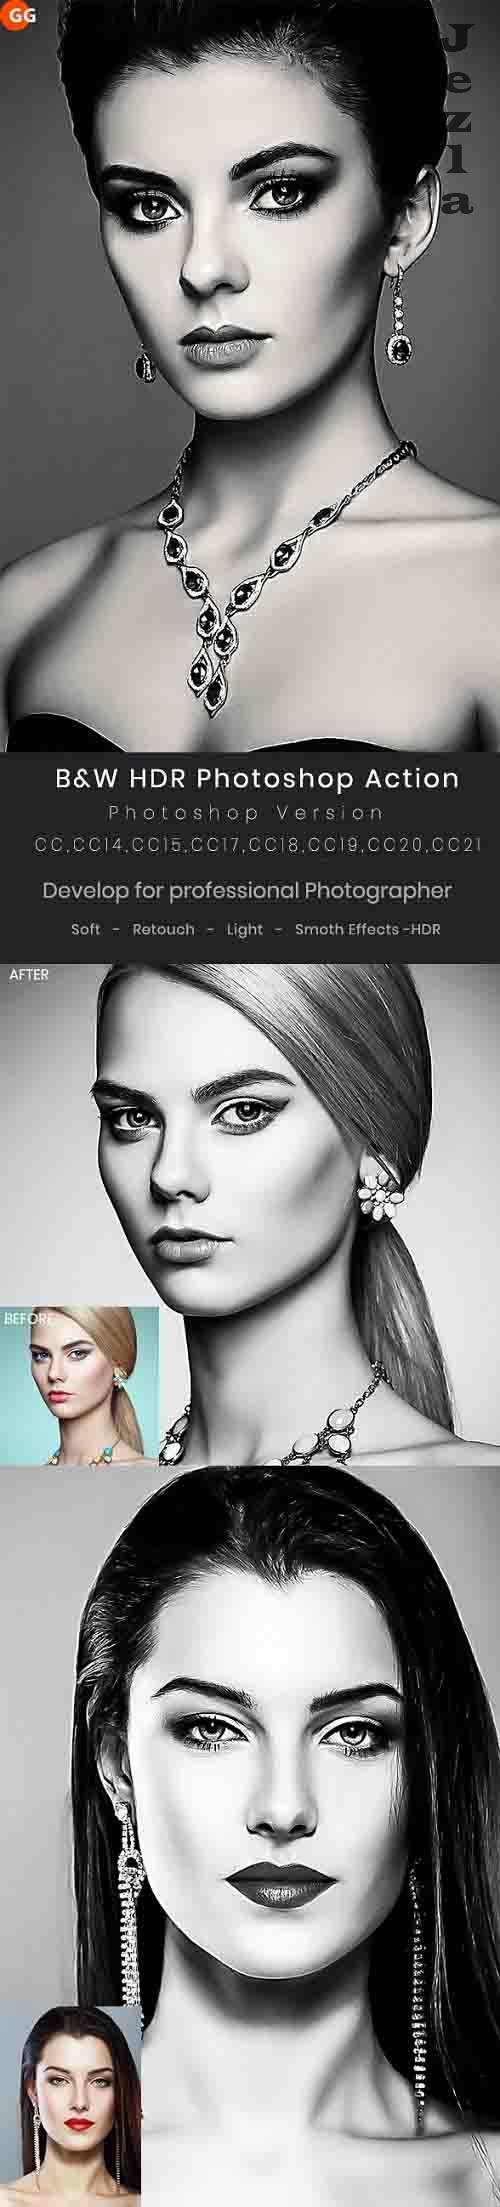 GraphicRiver - B&W HDR PHSP Action 29947060